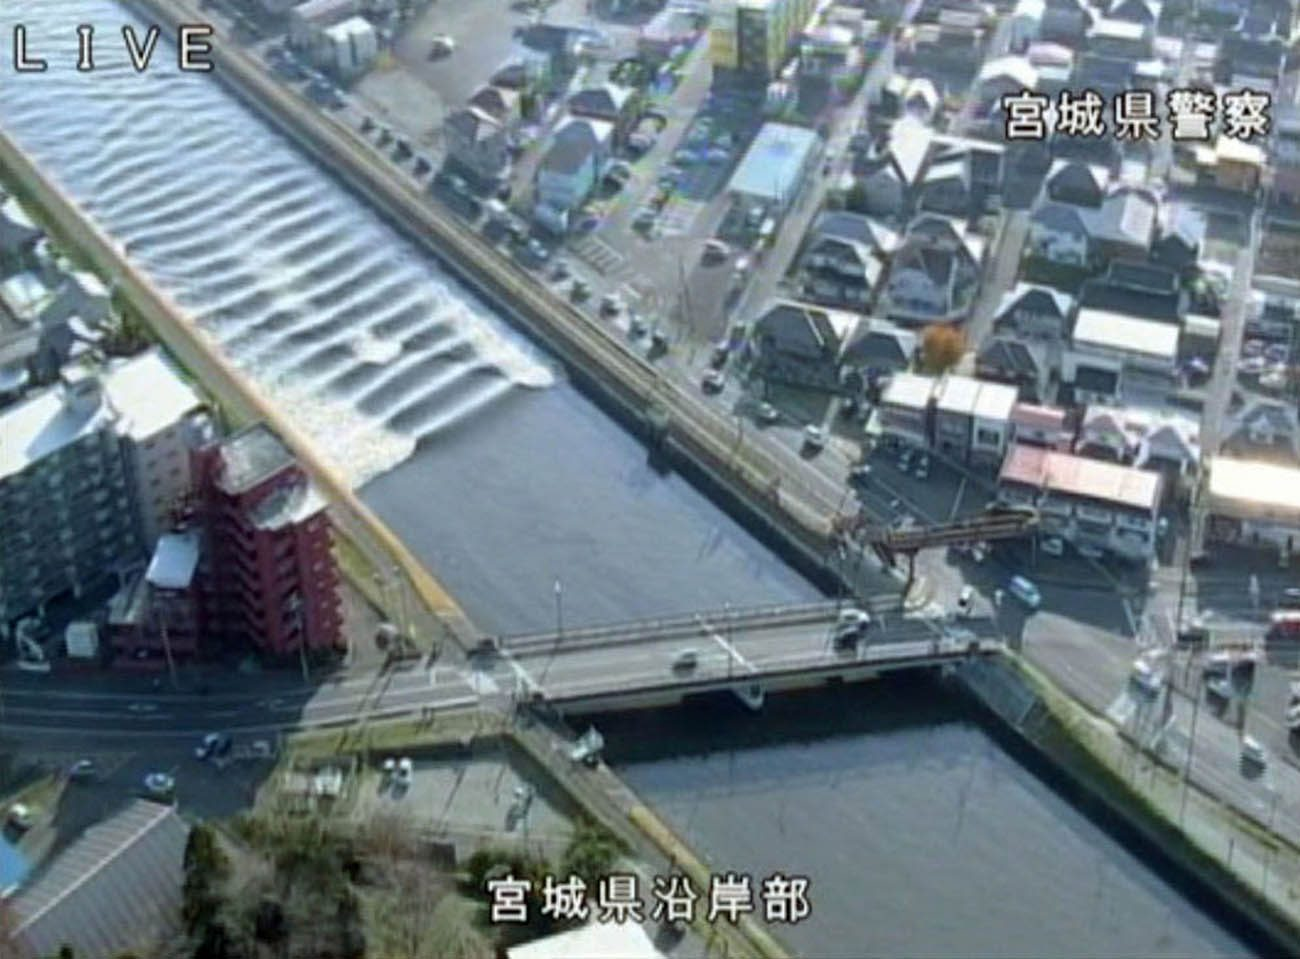 A tidal surge is seen in this video grab of Sunaoshi River after tsunami advisories were issued following an earthquake in Tagajo, Japan, Nov. 22. (CNS photo/ Miyagi Prefectural Police via Reuters)